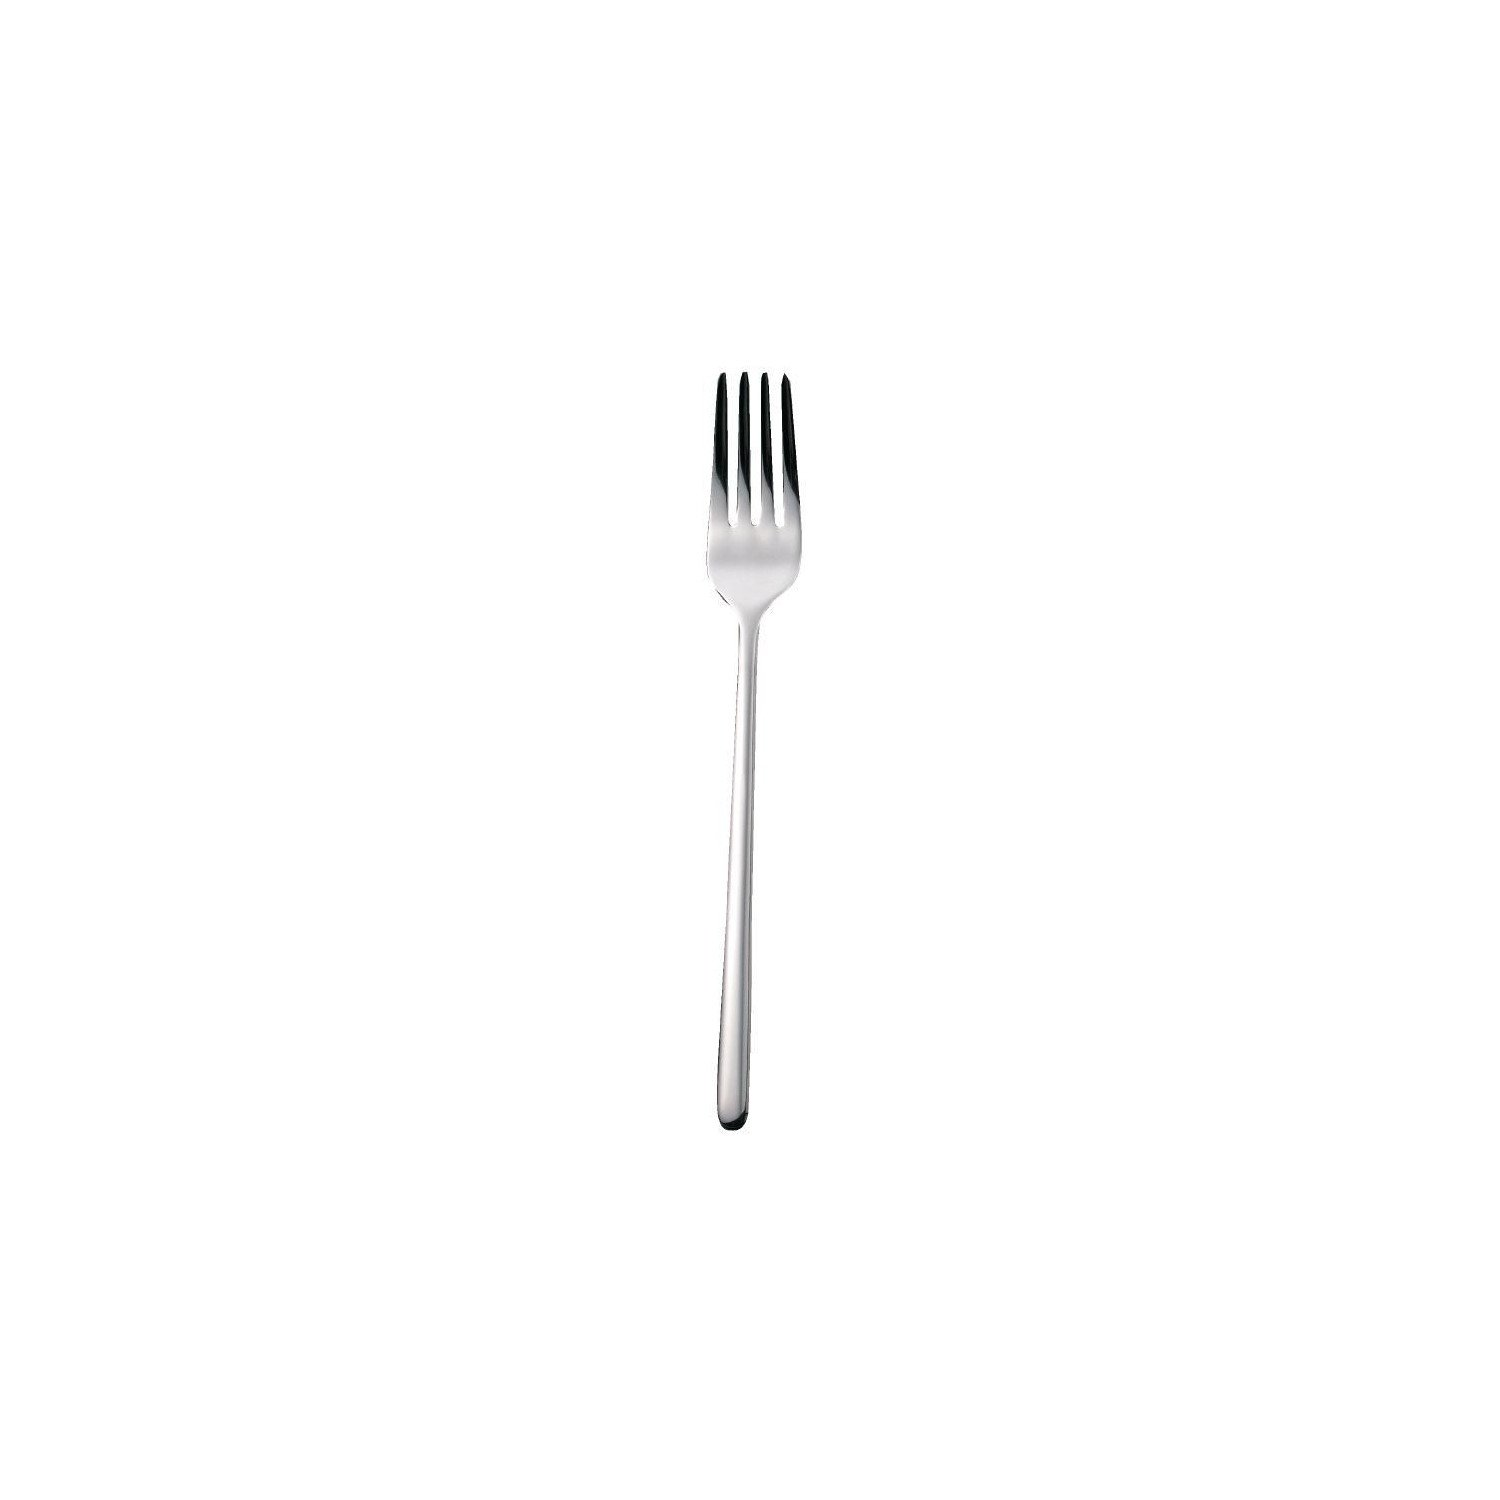 Fourchette de table Henley inox (12 pièces) OLYMPIA Collection Henley